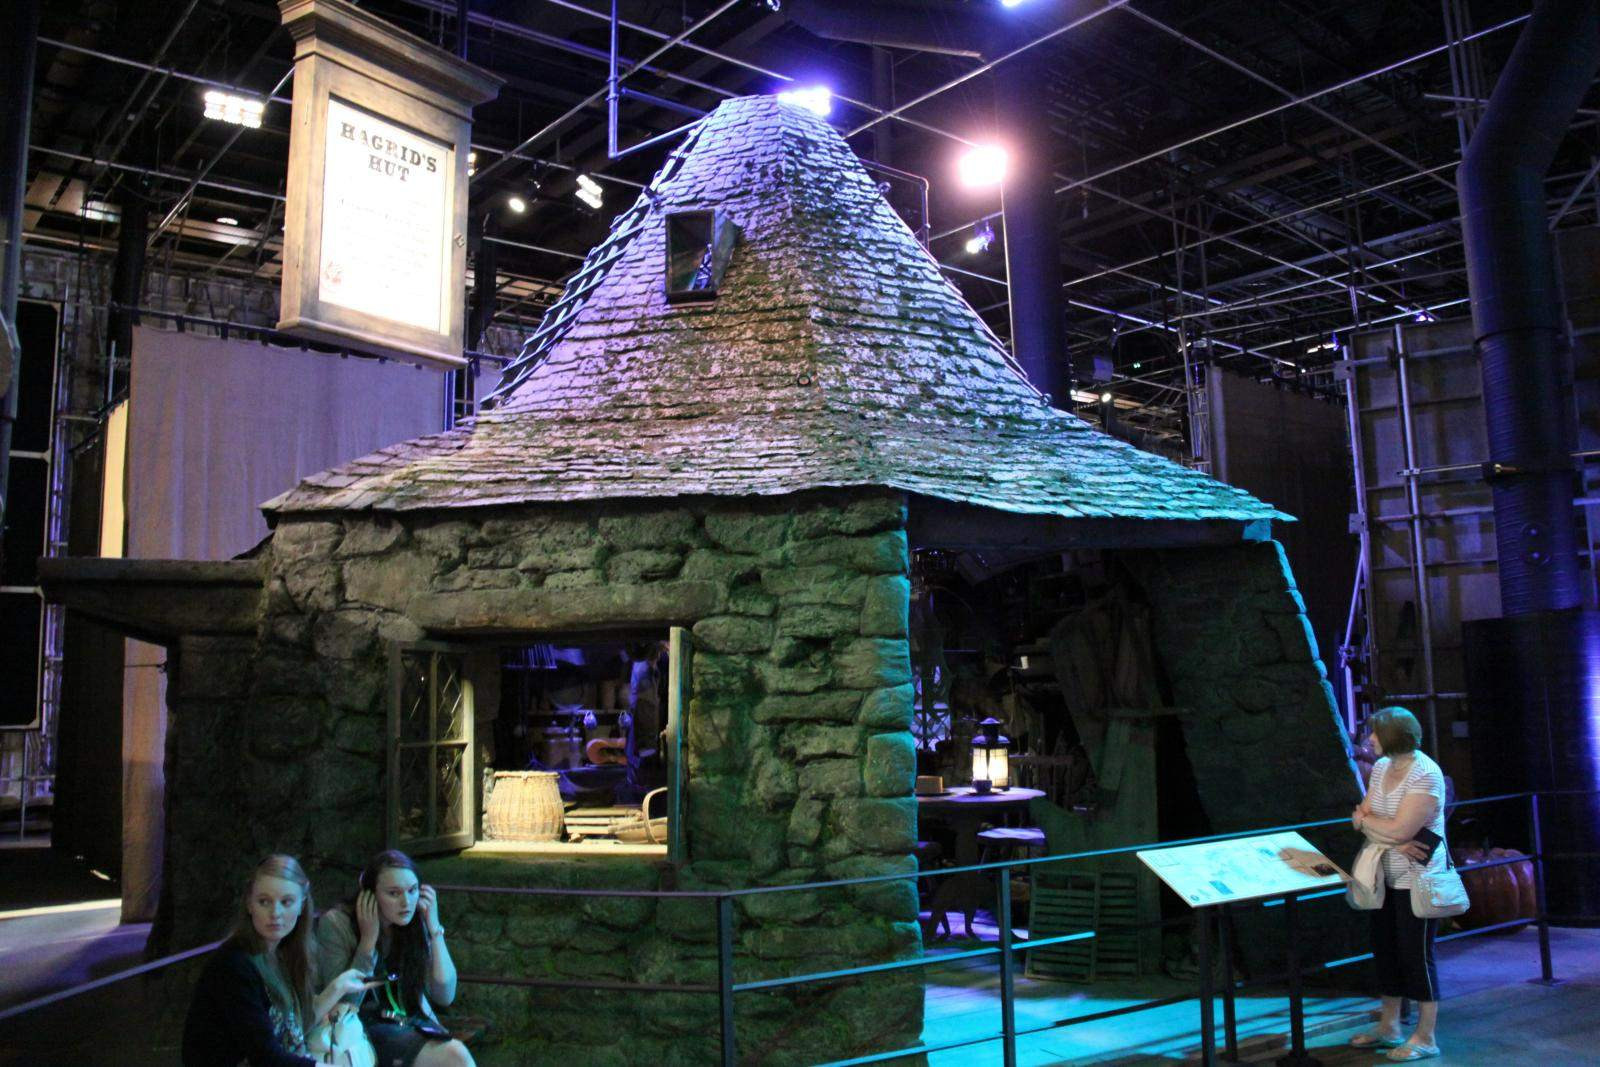 making harry potter13 The Making of Harry Potter, Warner Bros Studio London